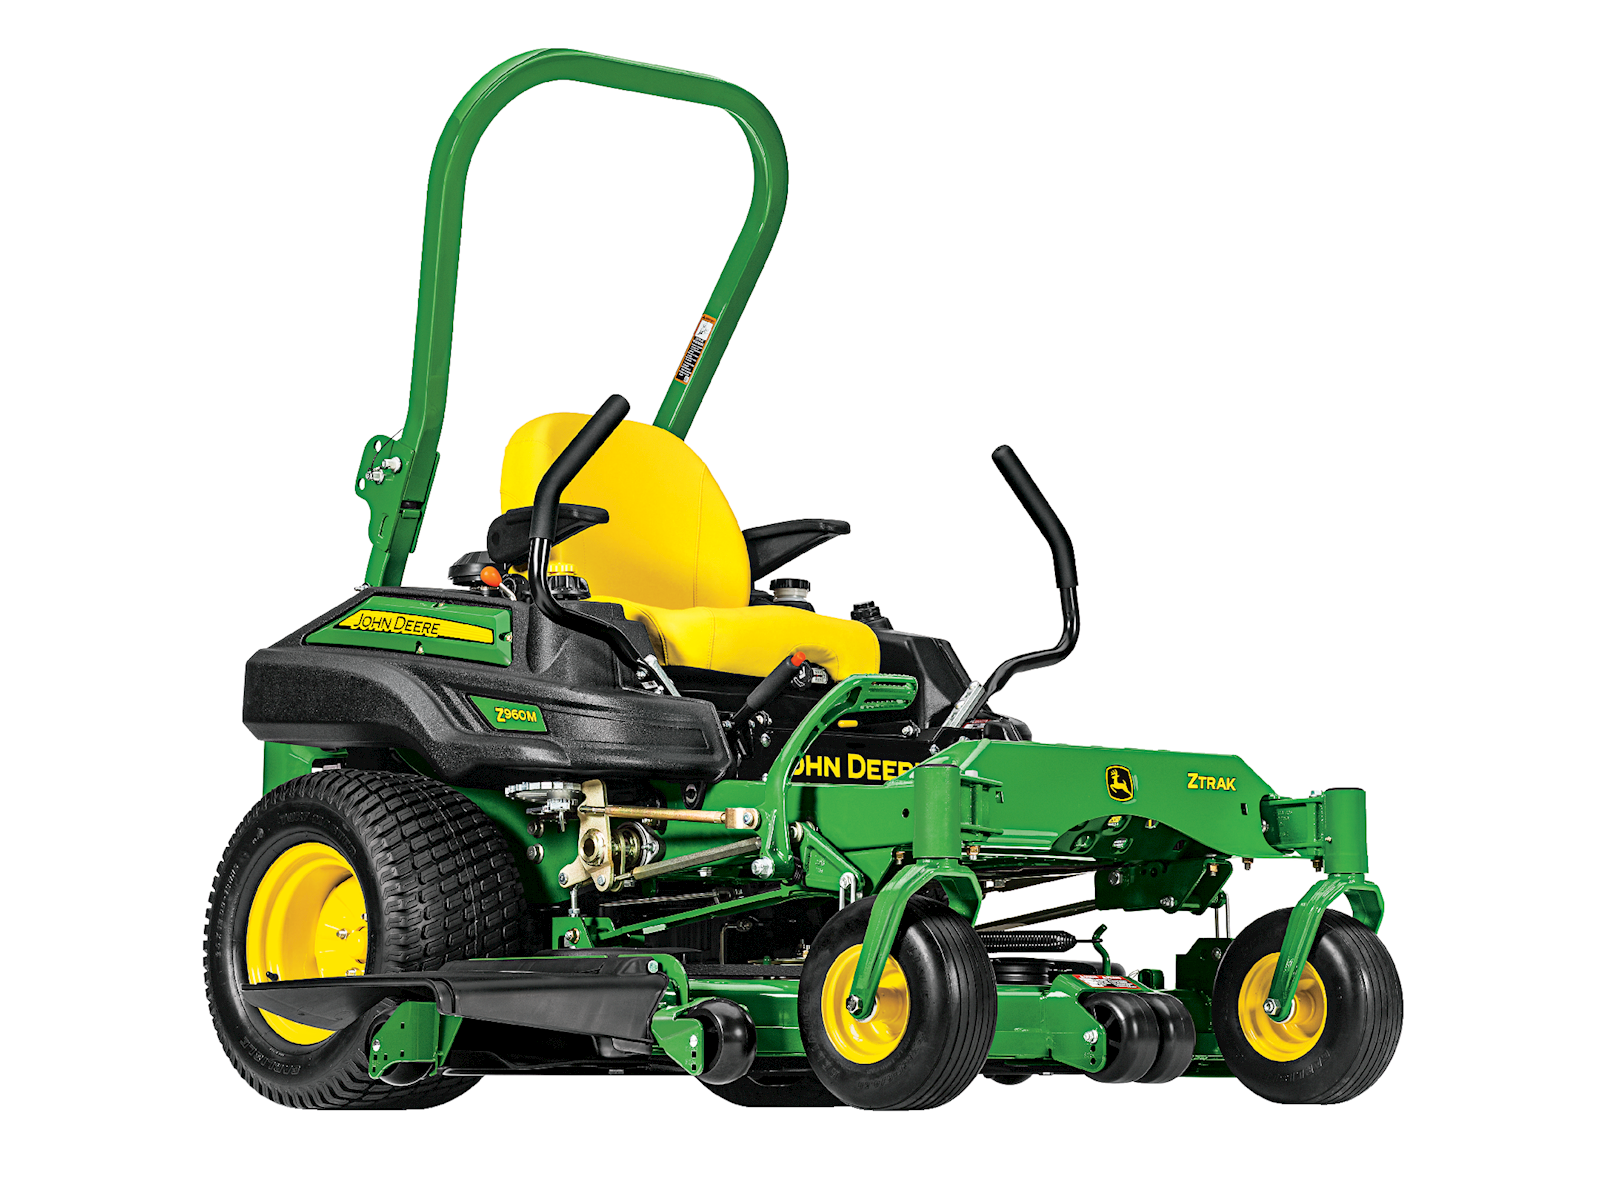 X754 Lawn Tractor